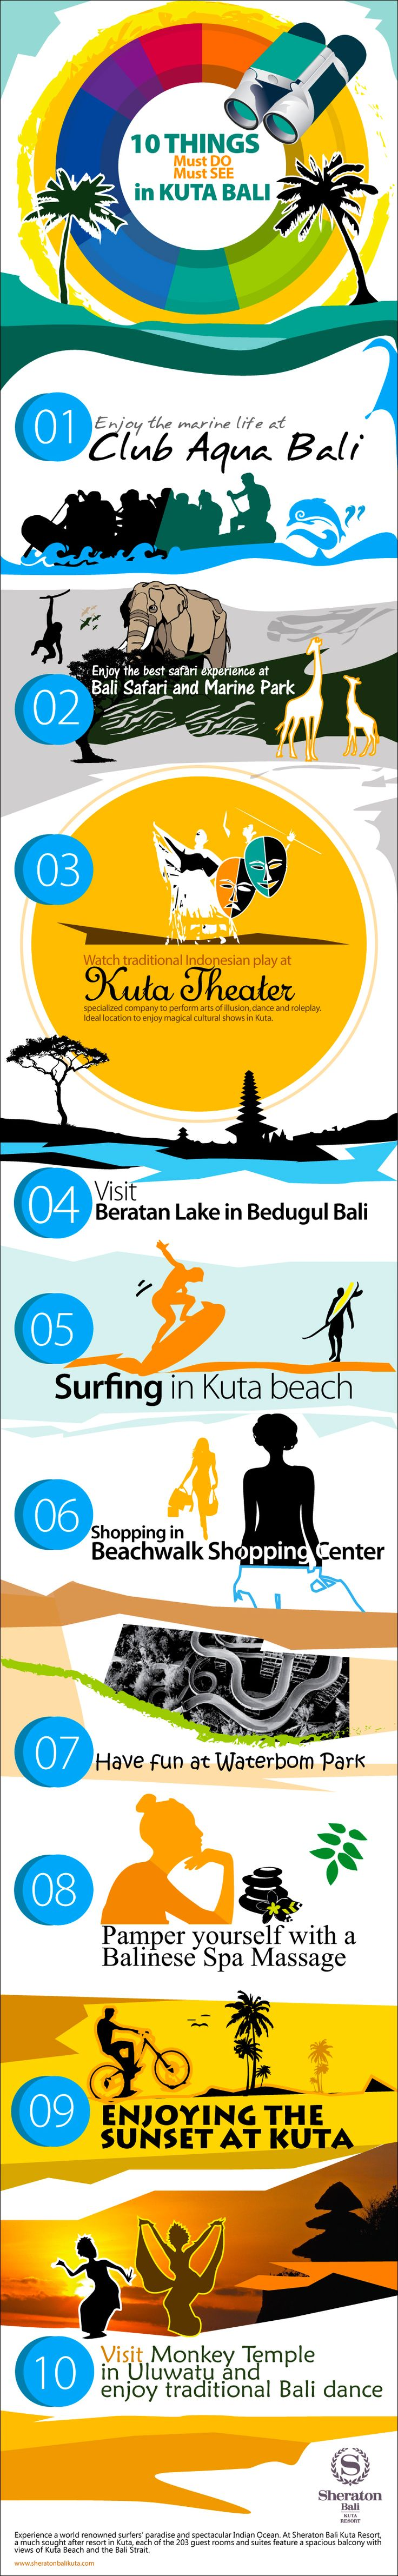 10 Things Must Do, Must See in Kuta Bali - We have gone through the whole Island and compiled a list of some of the best things to do in Bali.